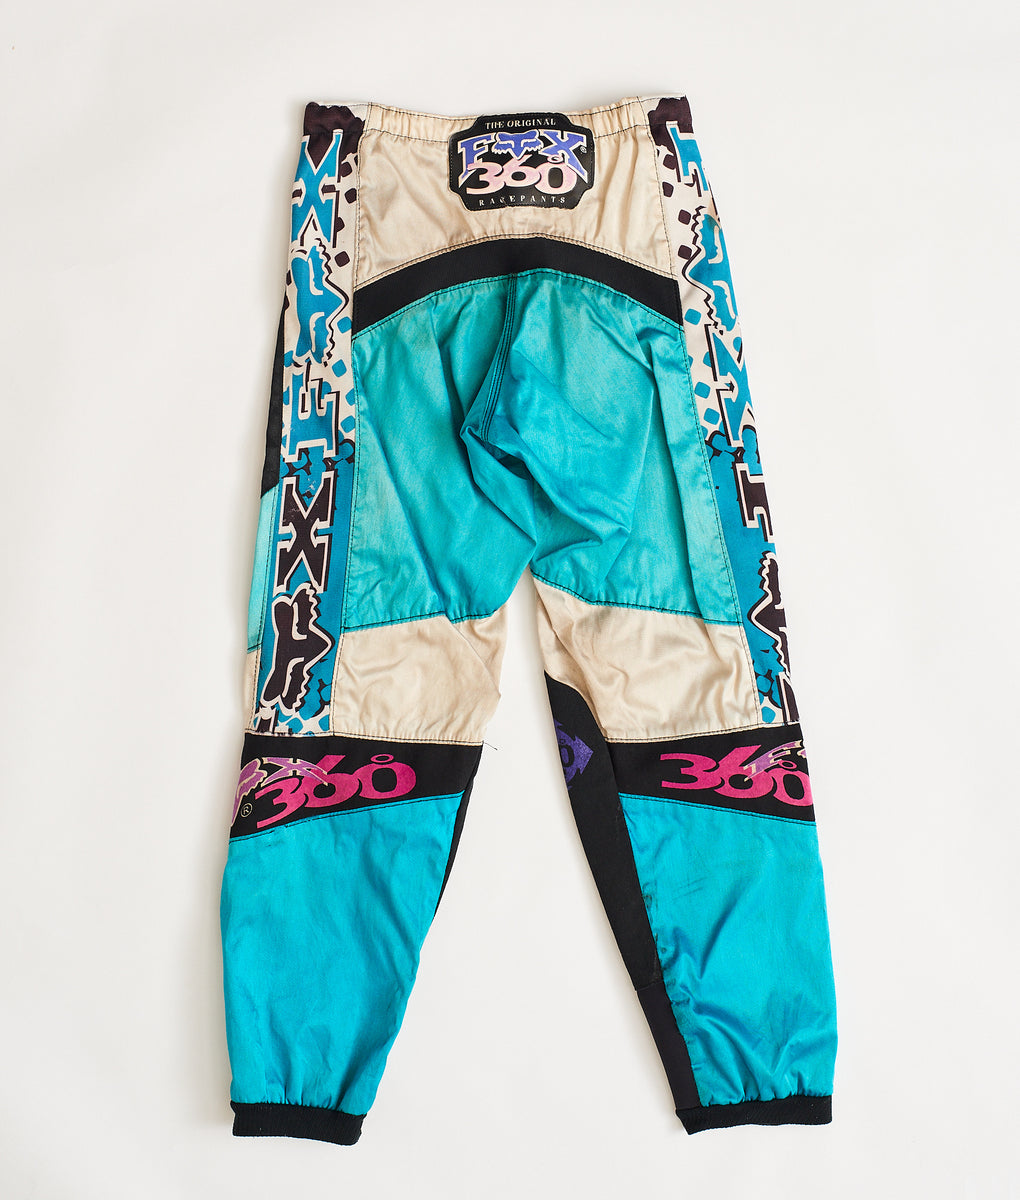 FOX 360 KEVLAR MOTOCROSS PANTS (32) - FROTHLYF